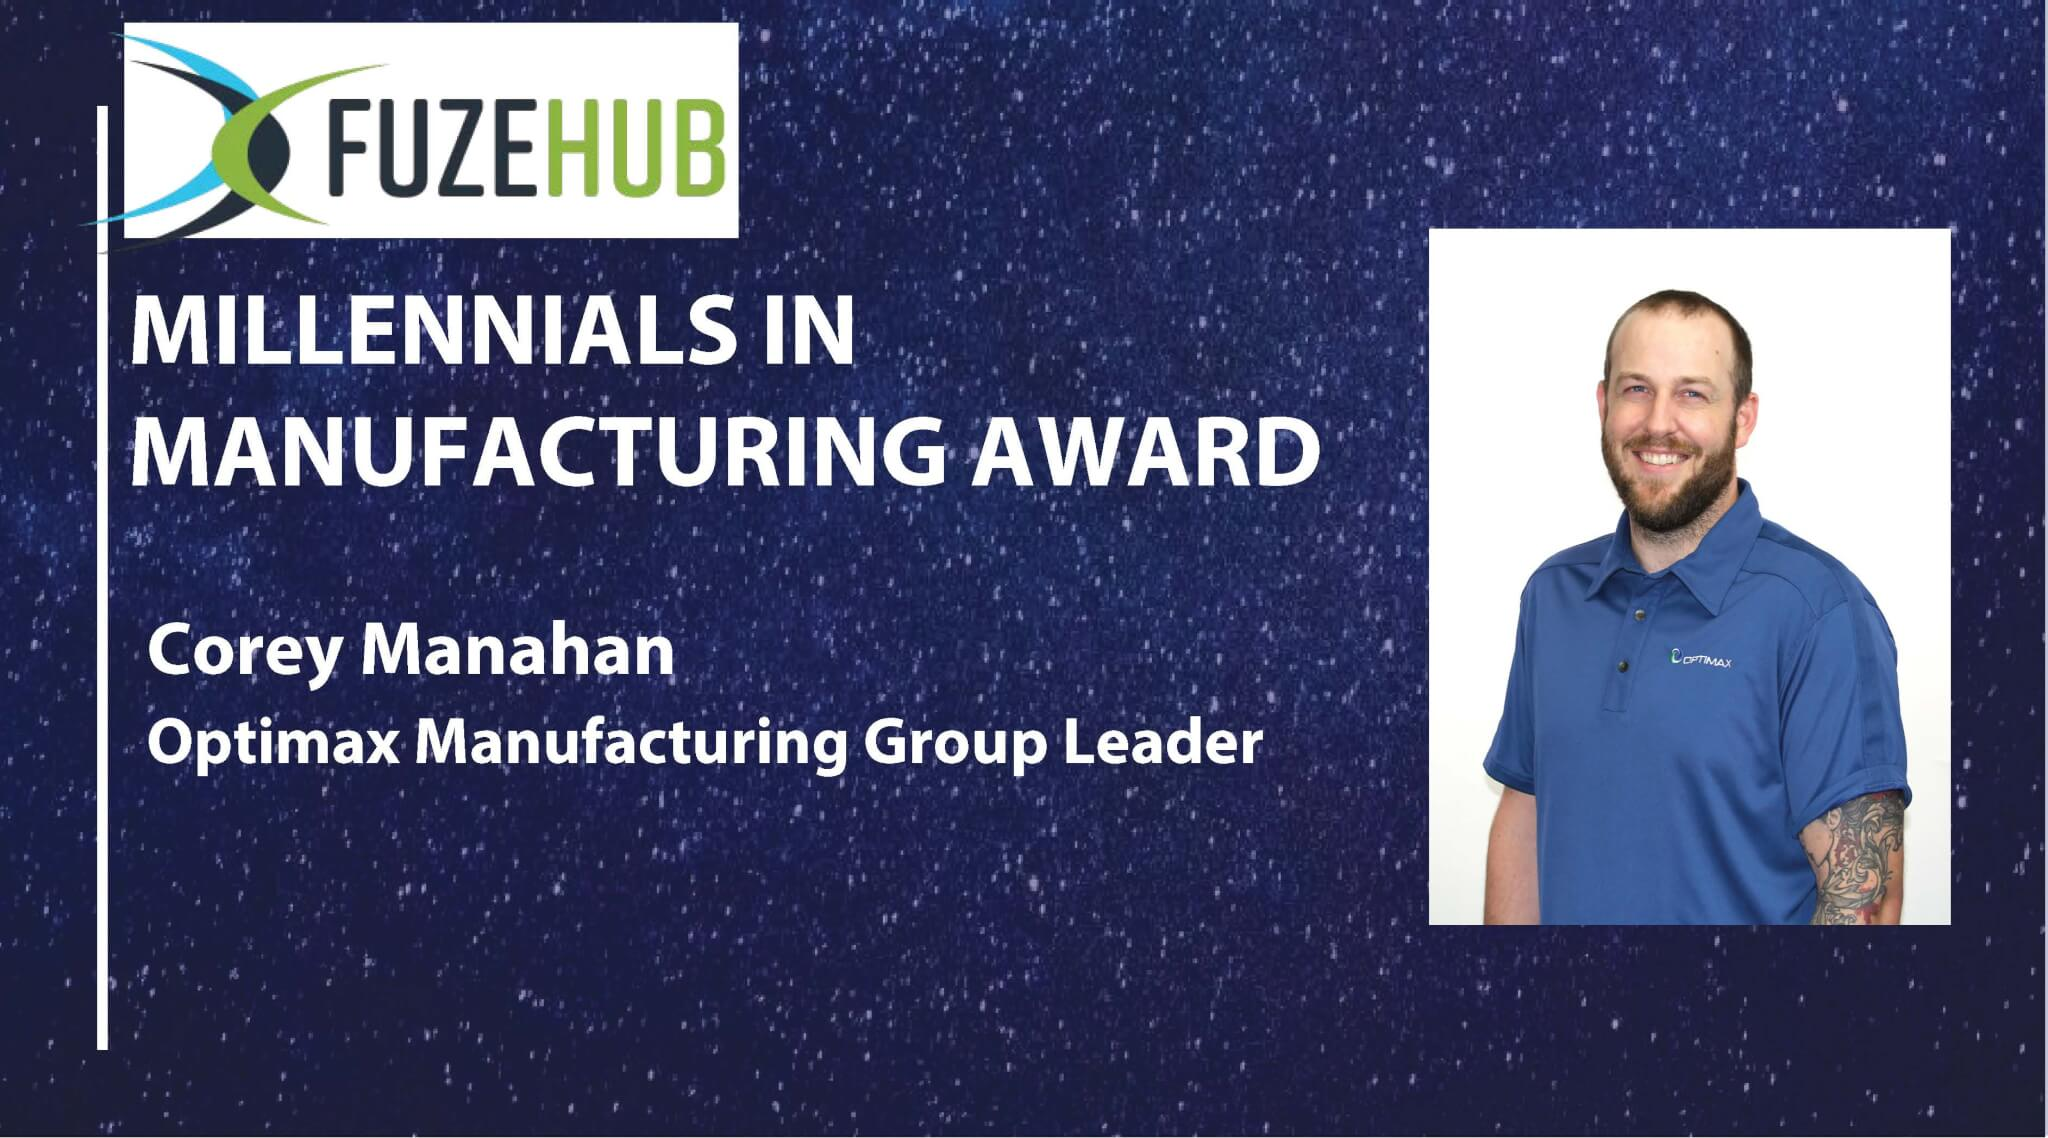 Corey Manahan millennials in manufacturing award